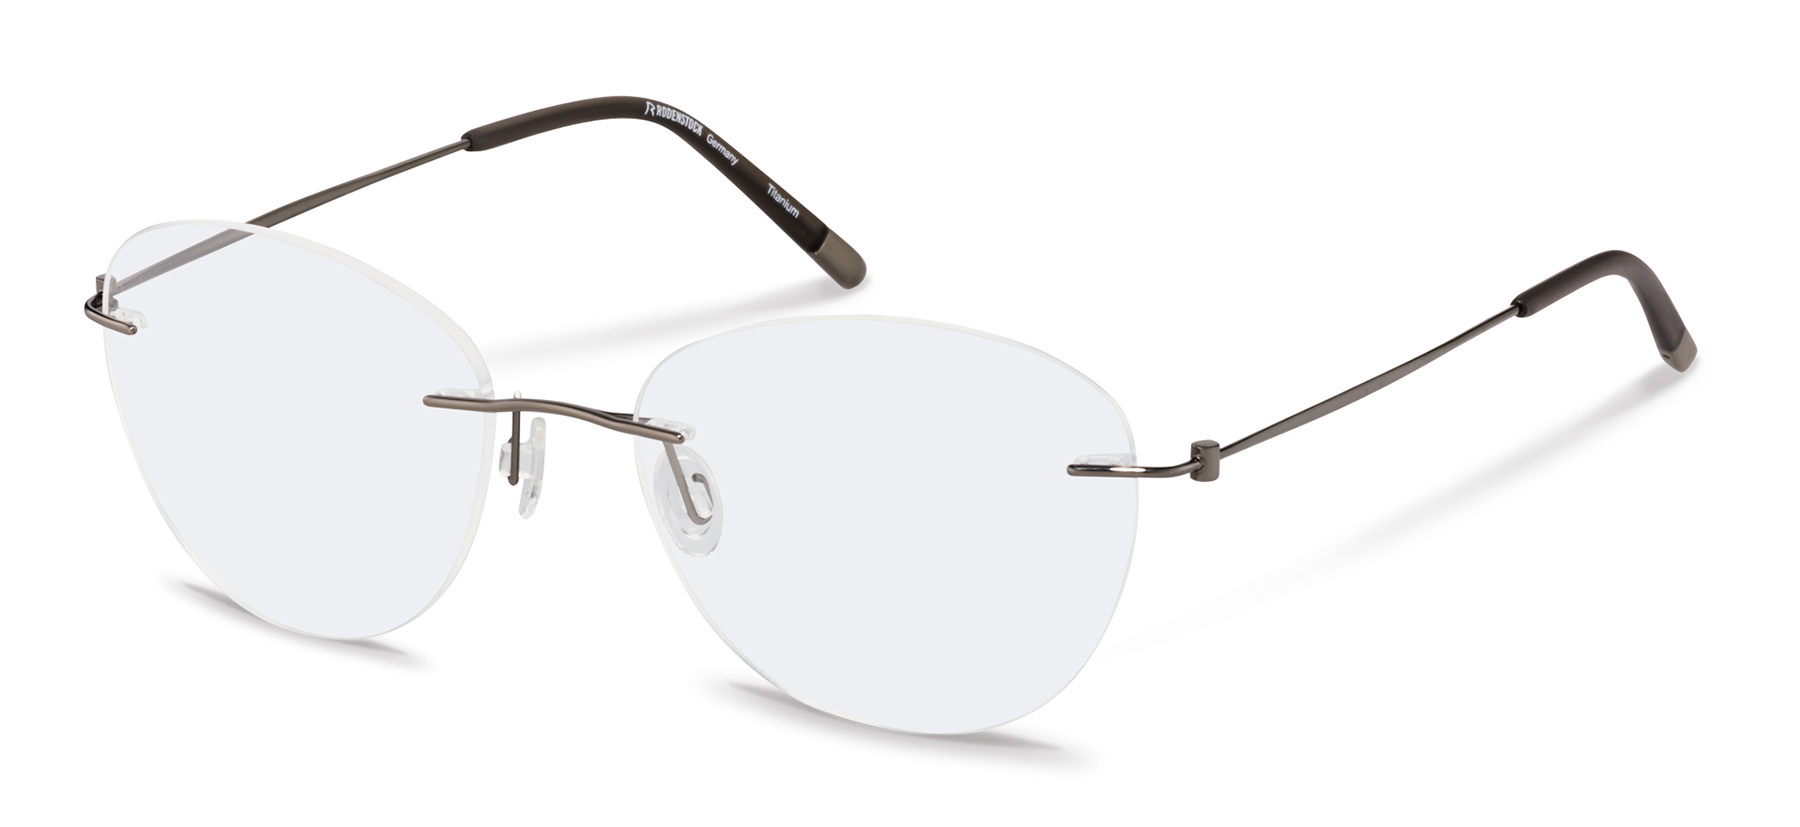 Rodenstock-Correction frame-R7093-gunmetal/grey